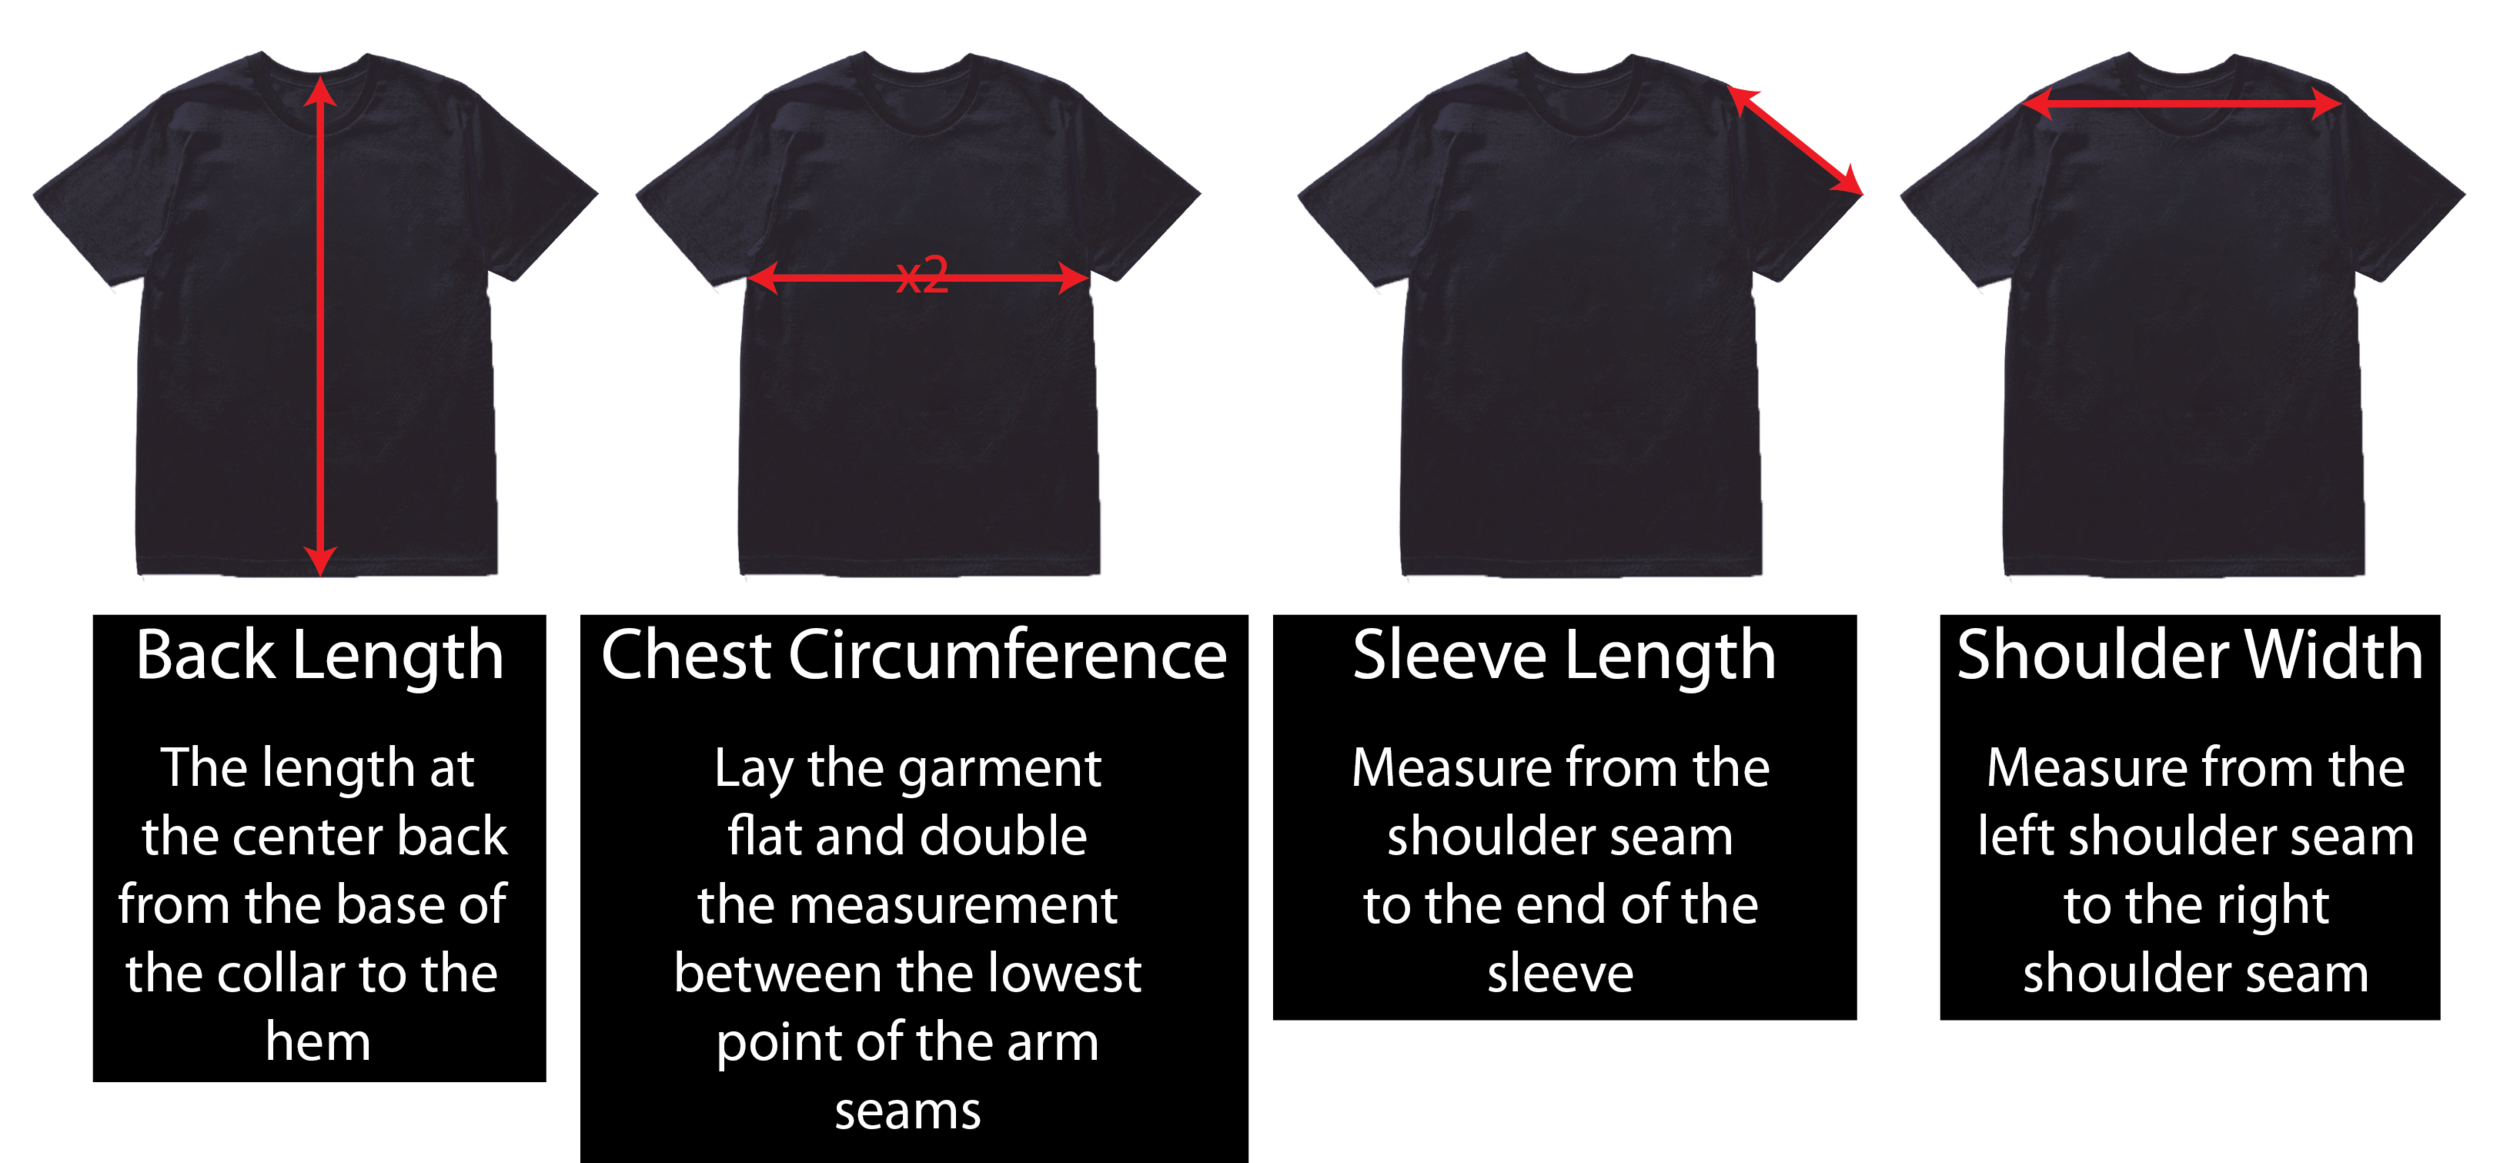 Tshirt sizing diagram.png